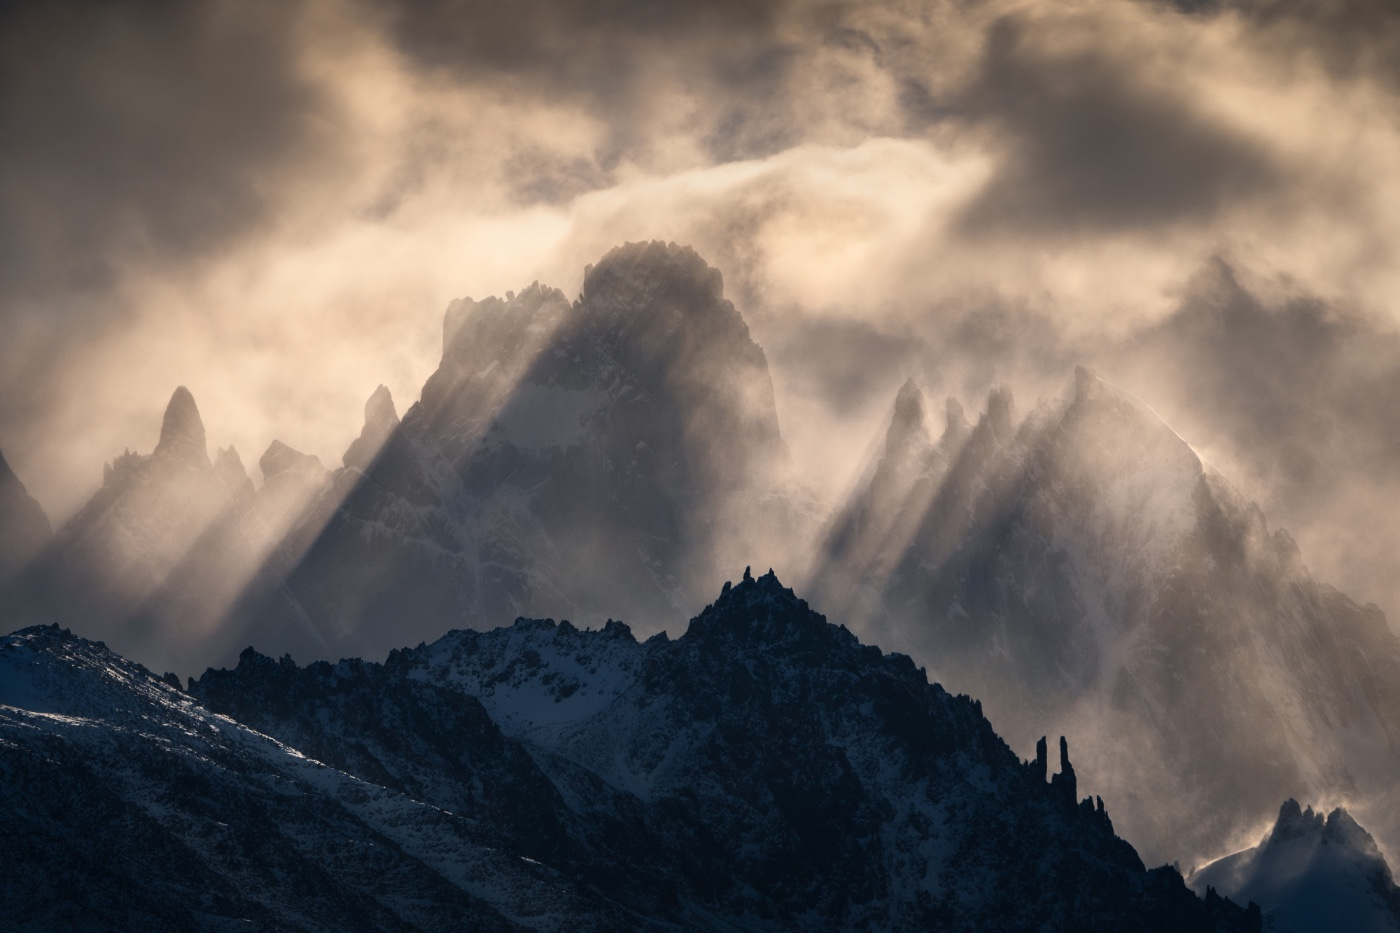 Warm-lights-shine-through-the-thick-cloud-on-parts-of-the-famous-Fitz-Roy-in-Patagonia.jpg